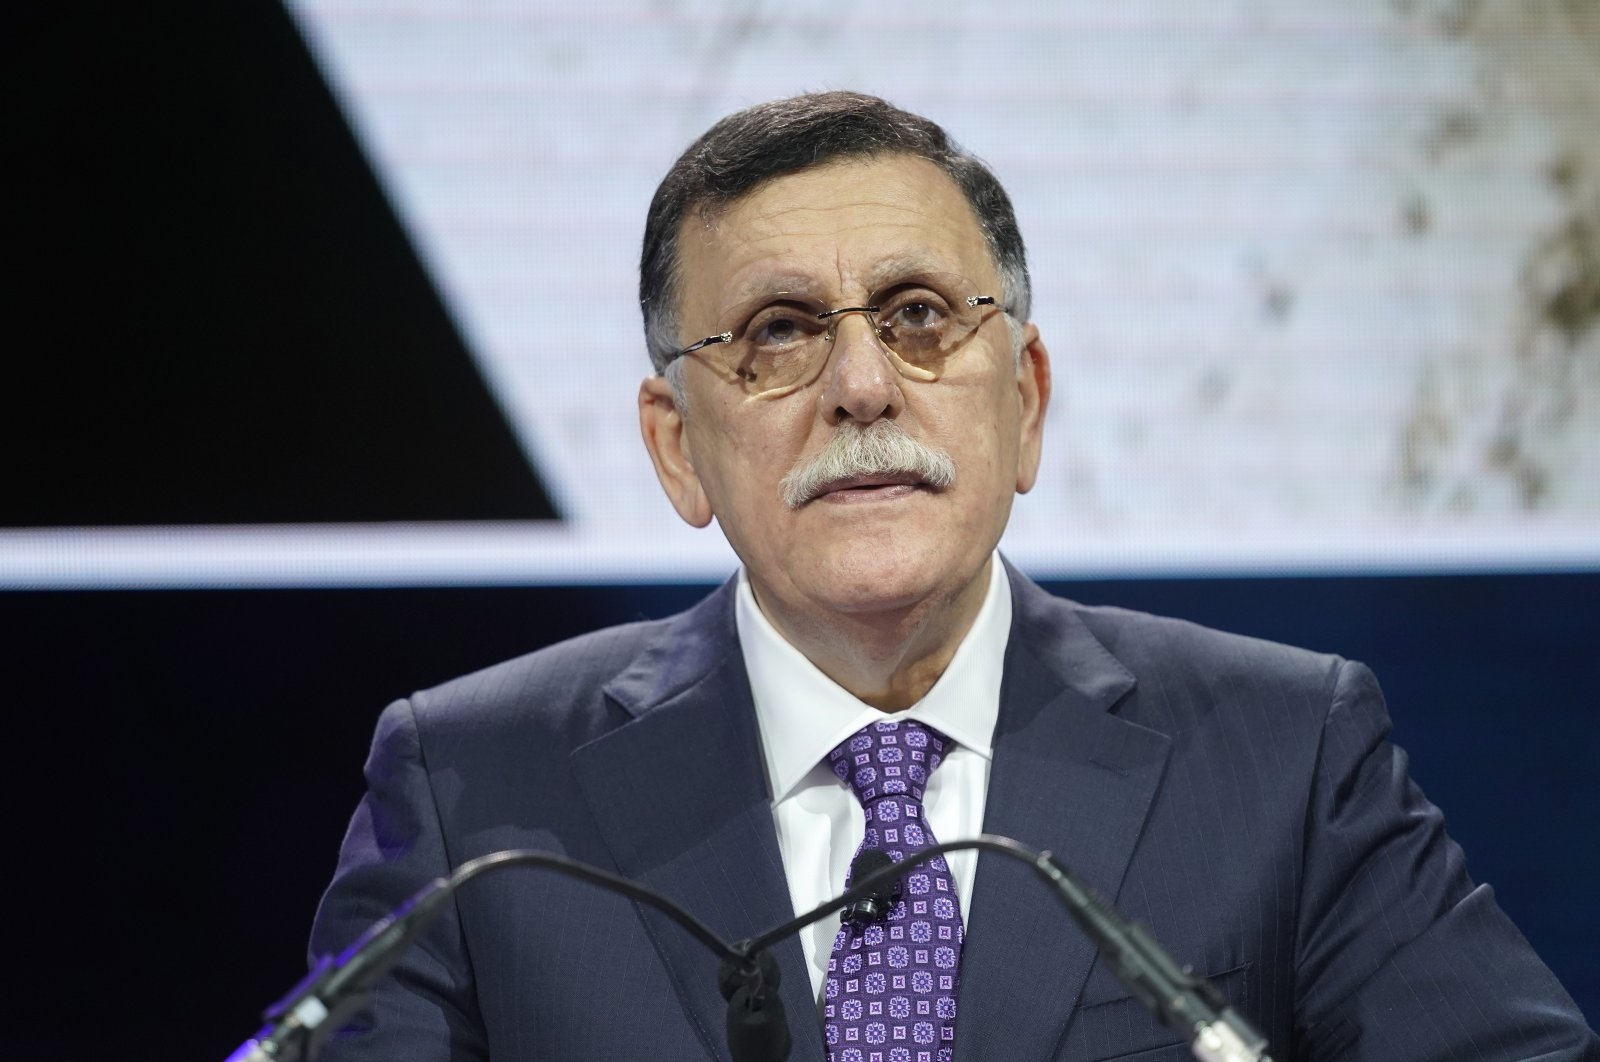 Prime minister of Libya's Government Of National Accord (GNA), Fayez Sarraj, speaks at the 2019 Concordia Annual Summit, New York City, U.S., Sept. 23, 2019. (Getty Images for Concordia Summit)